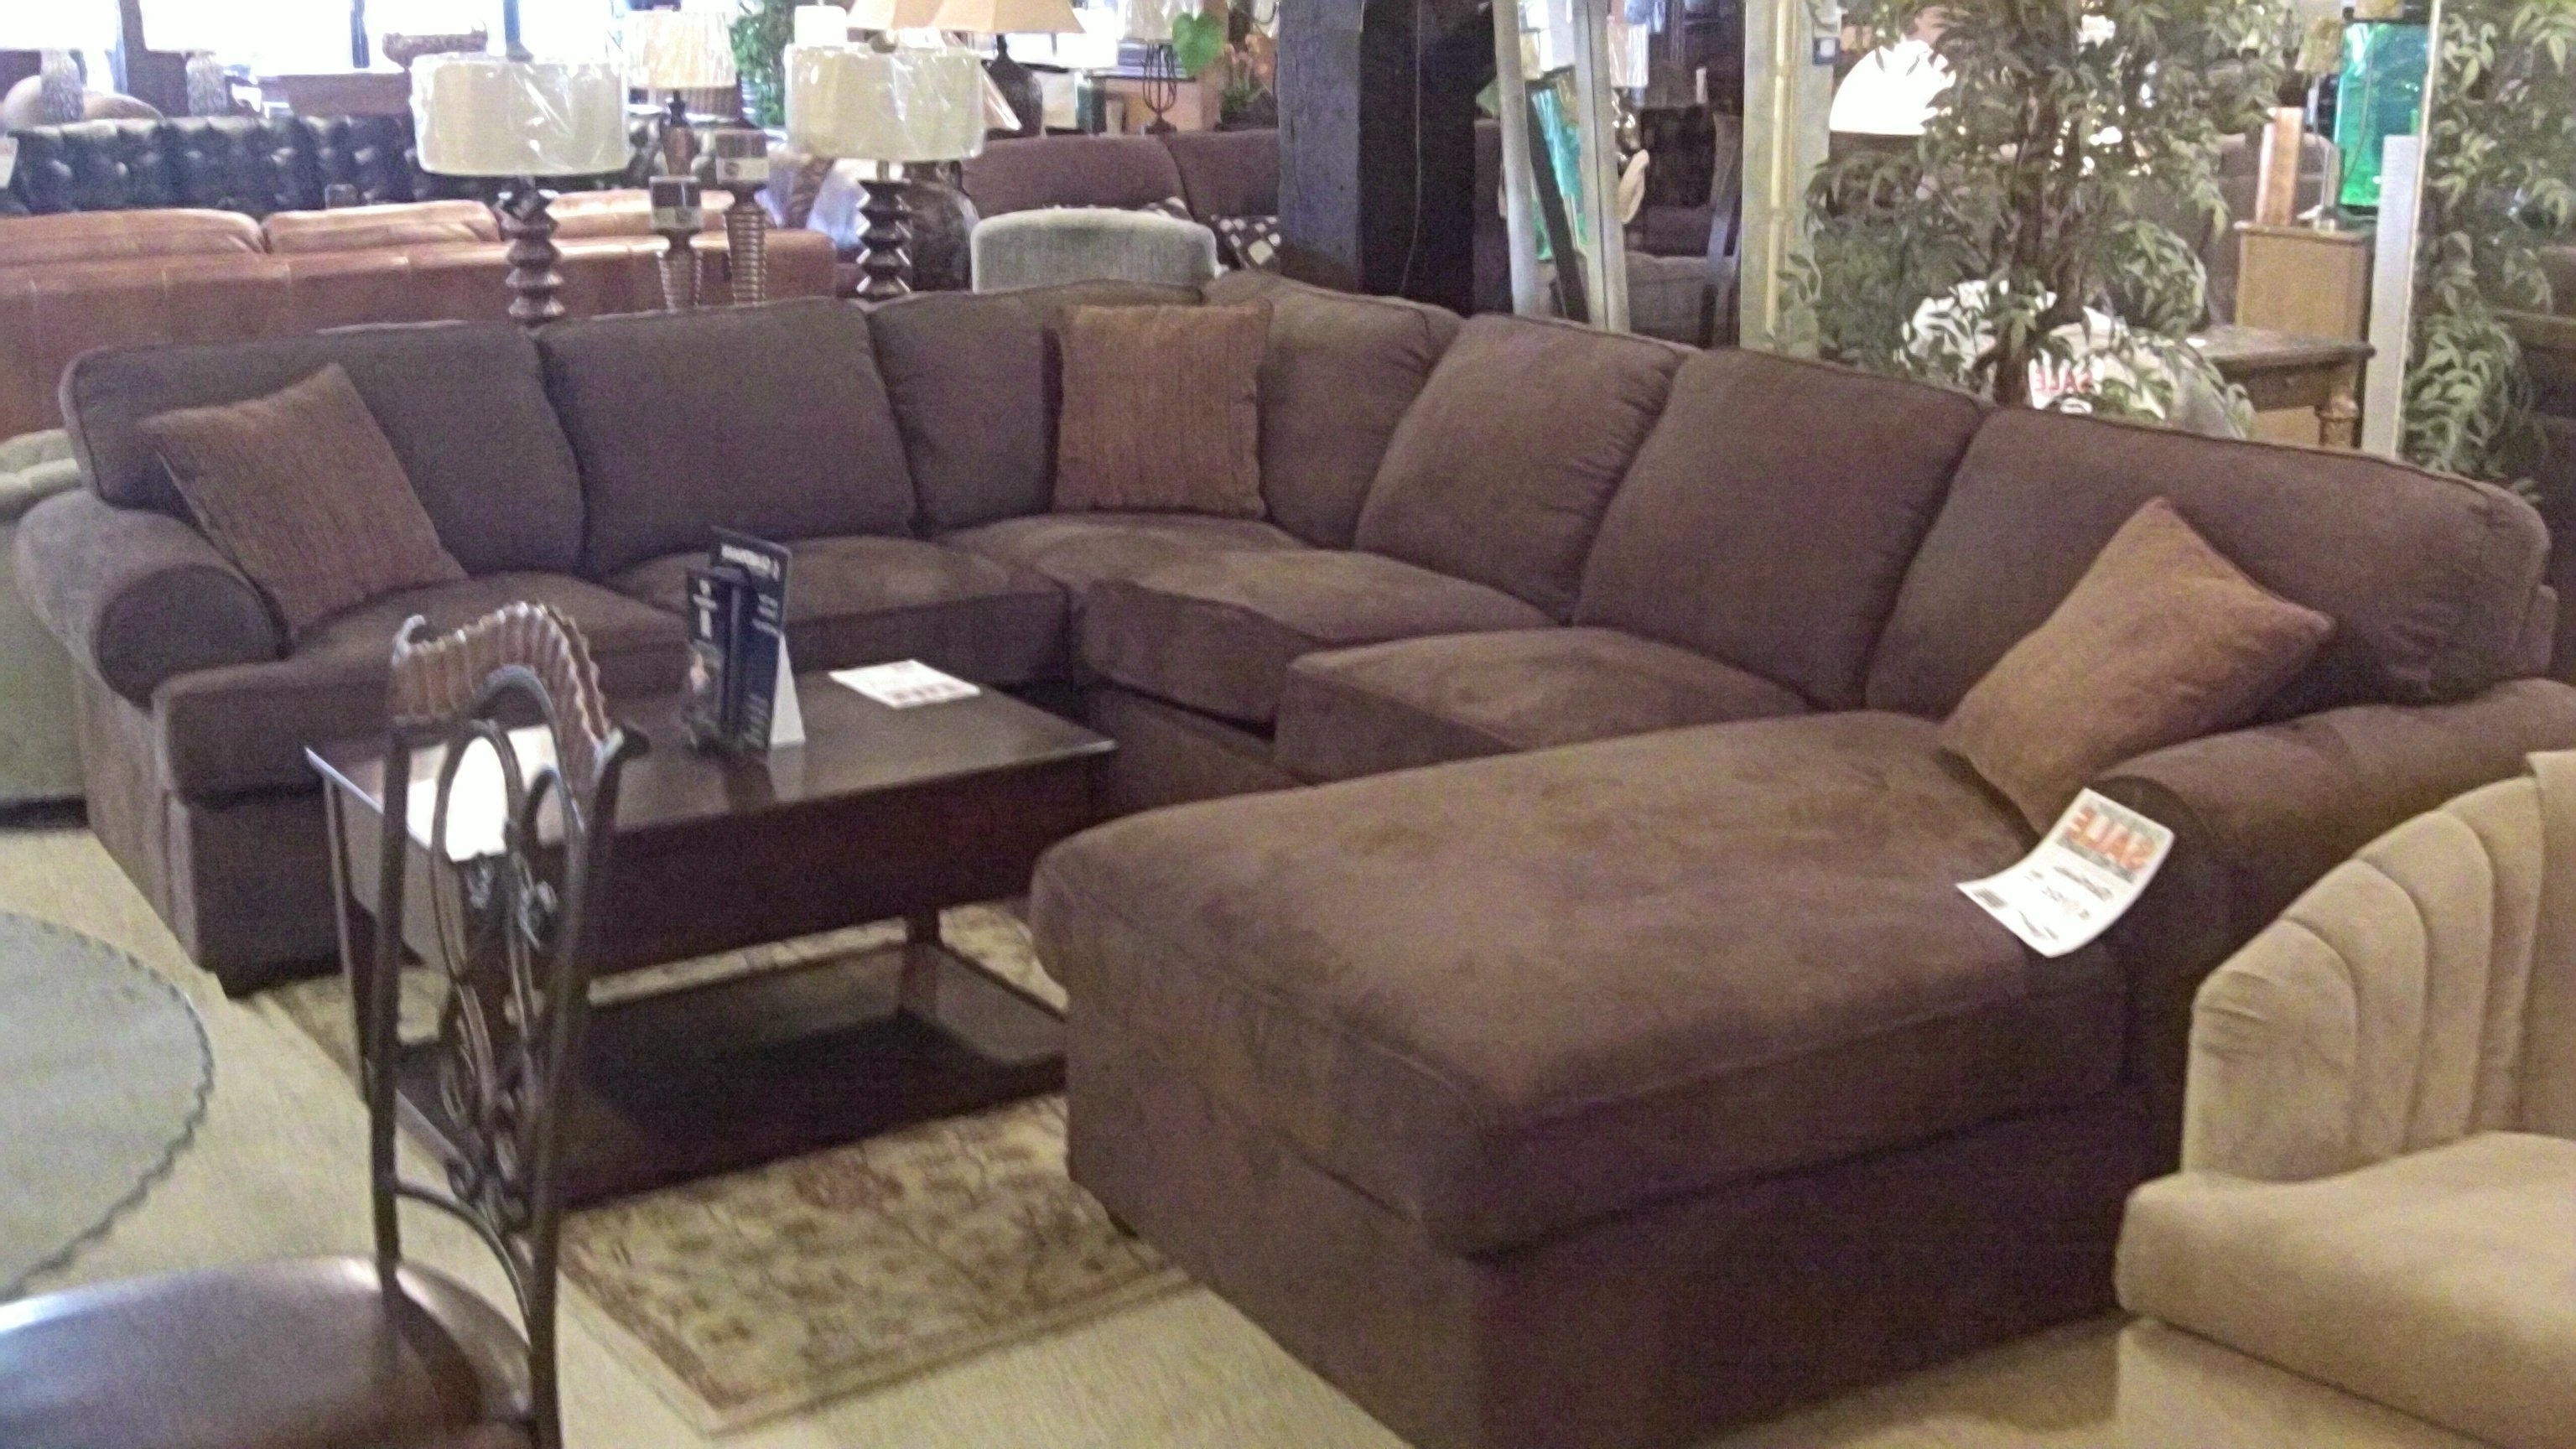 Most Recent Magnificent Large Sectional Sofas — The Kienandsweet Furnitures Inside Oversized Sectionals With Chaise (View 2 of 15)